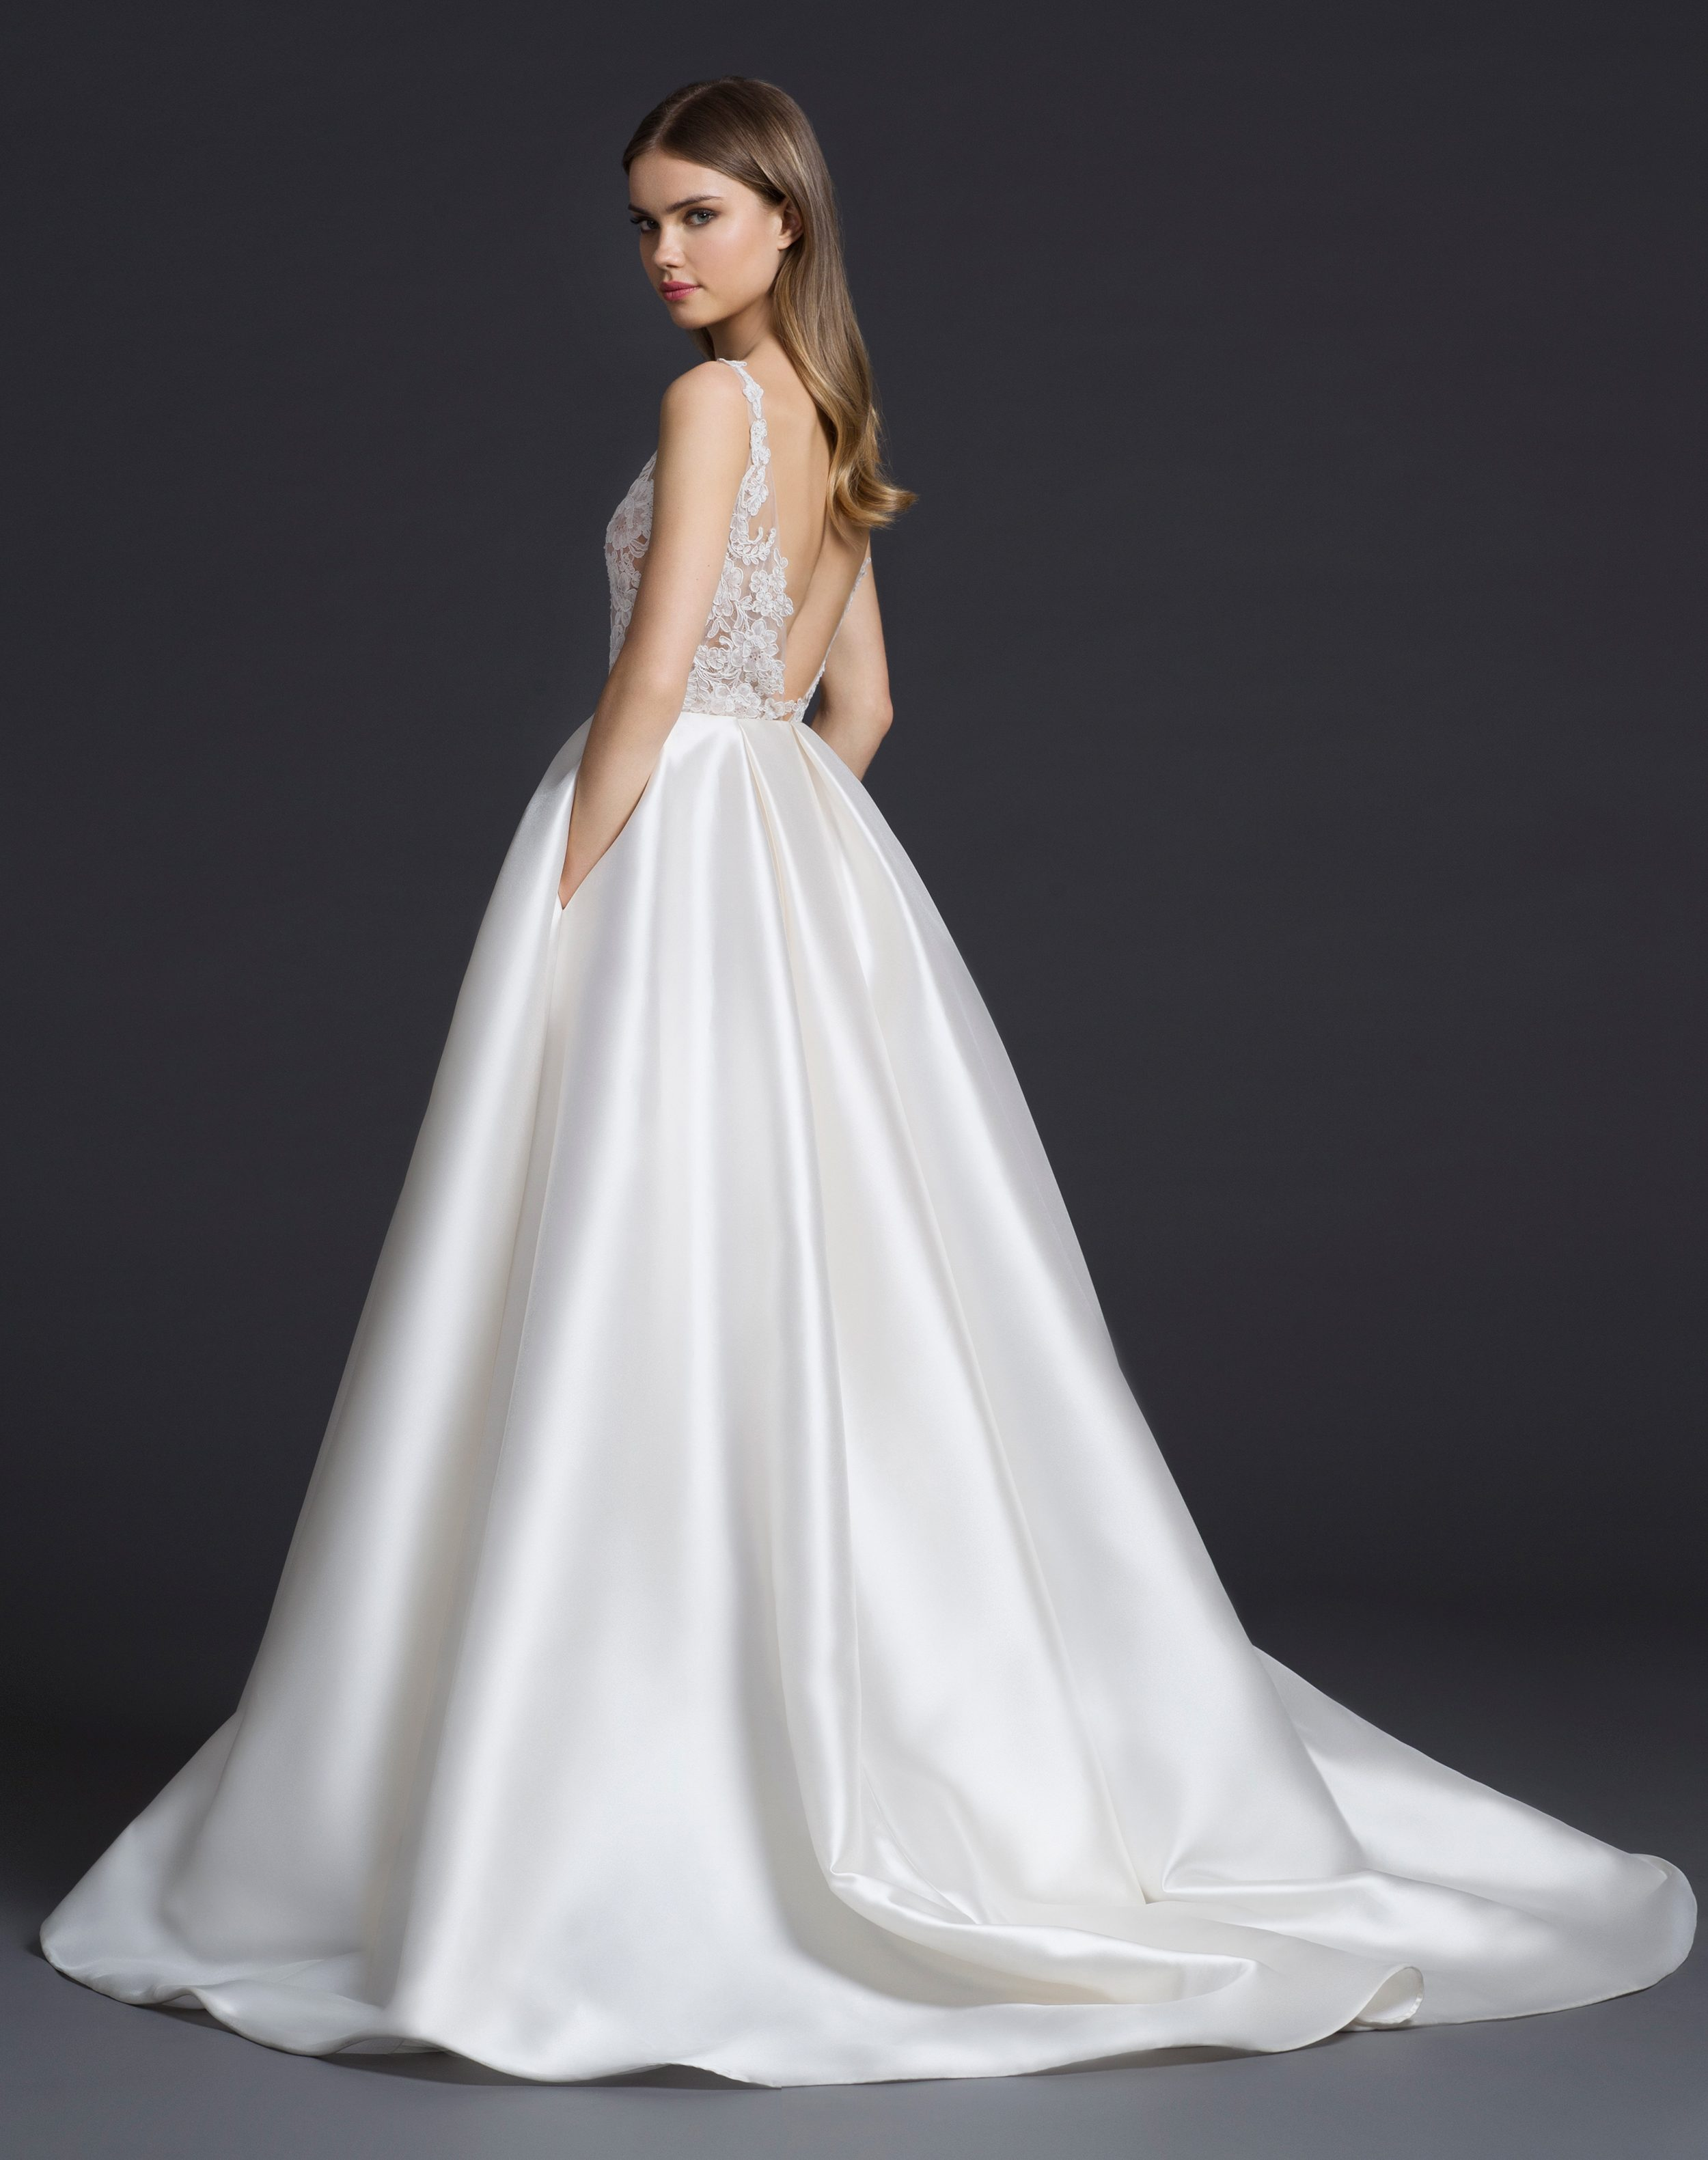 New Wedding Gowns from Lazaro Arrive at StarDust | StarDust Celebrations